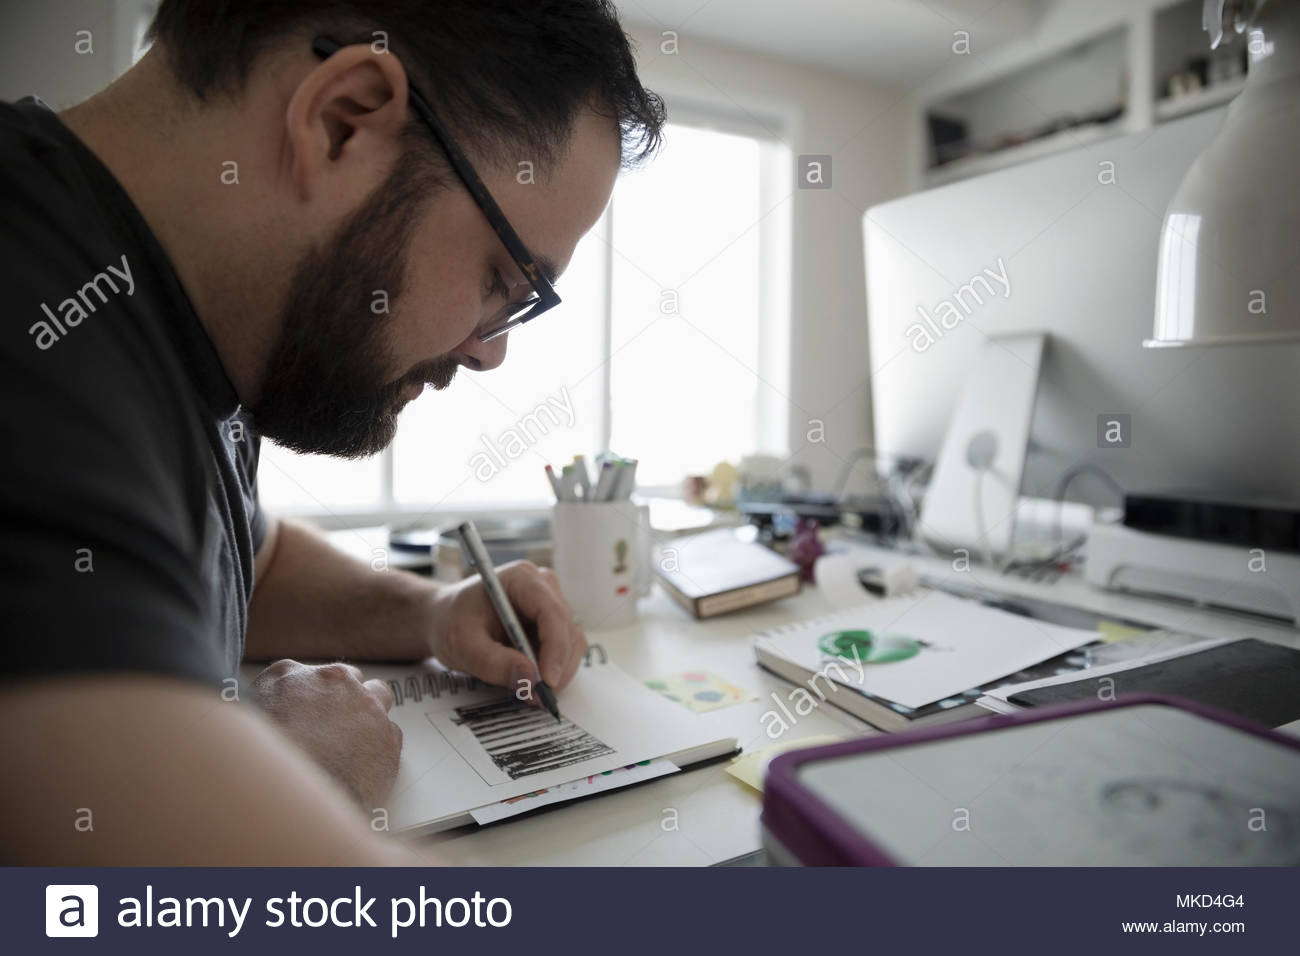 Focused male illustrator sketching in home office - Stock Image